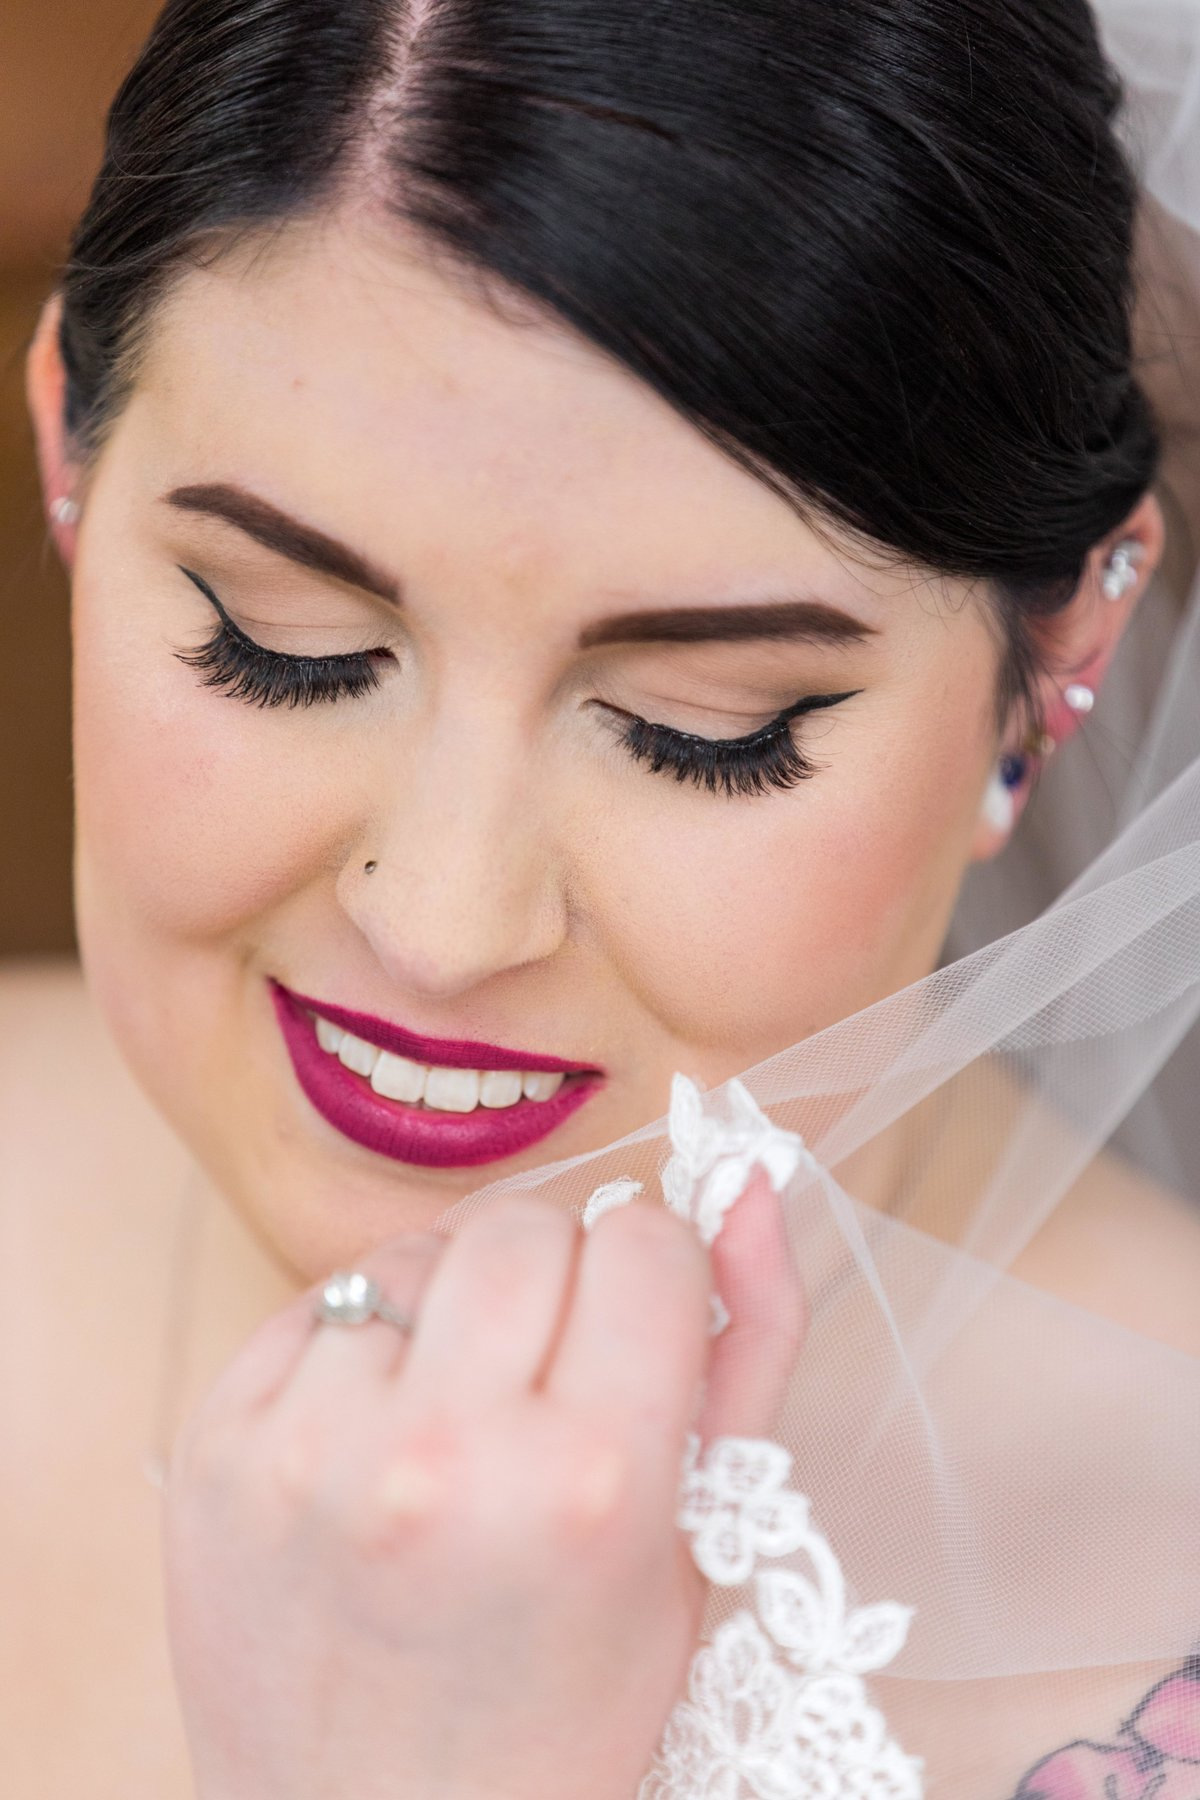 Hannah-Barlow-Photography-Wedding-Bride-Getting-Ready_012